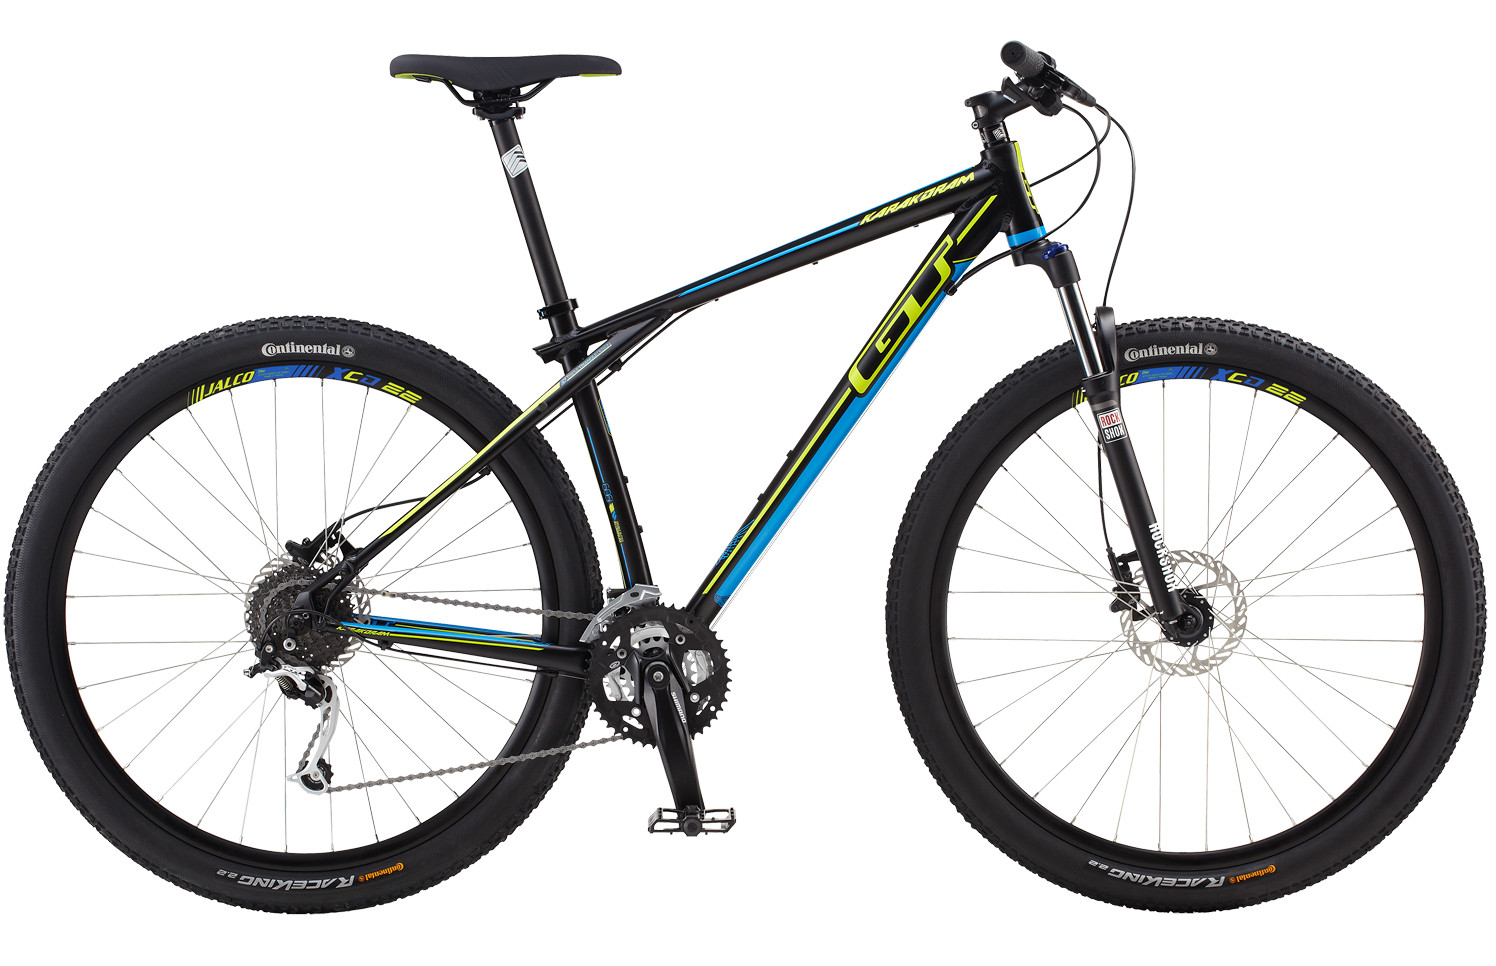 2014 GT Karakoram Elite Bike G14_29M_KARA_ELITE_BLK_4